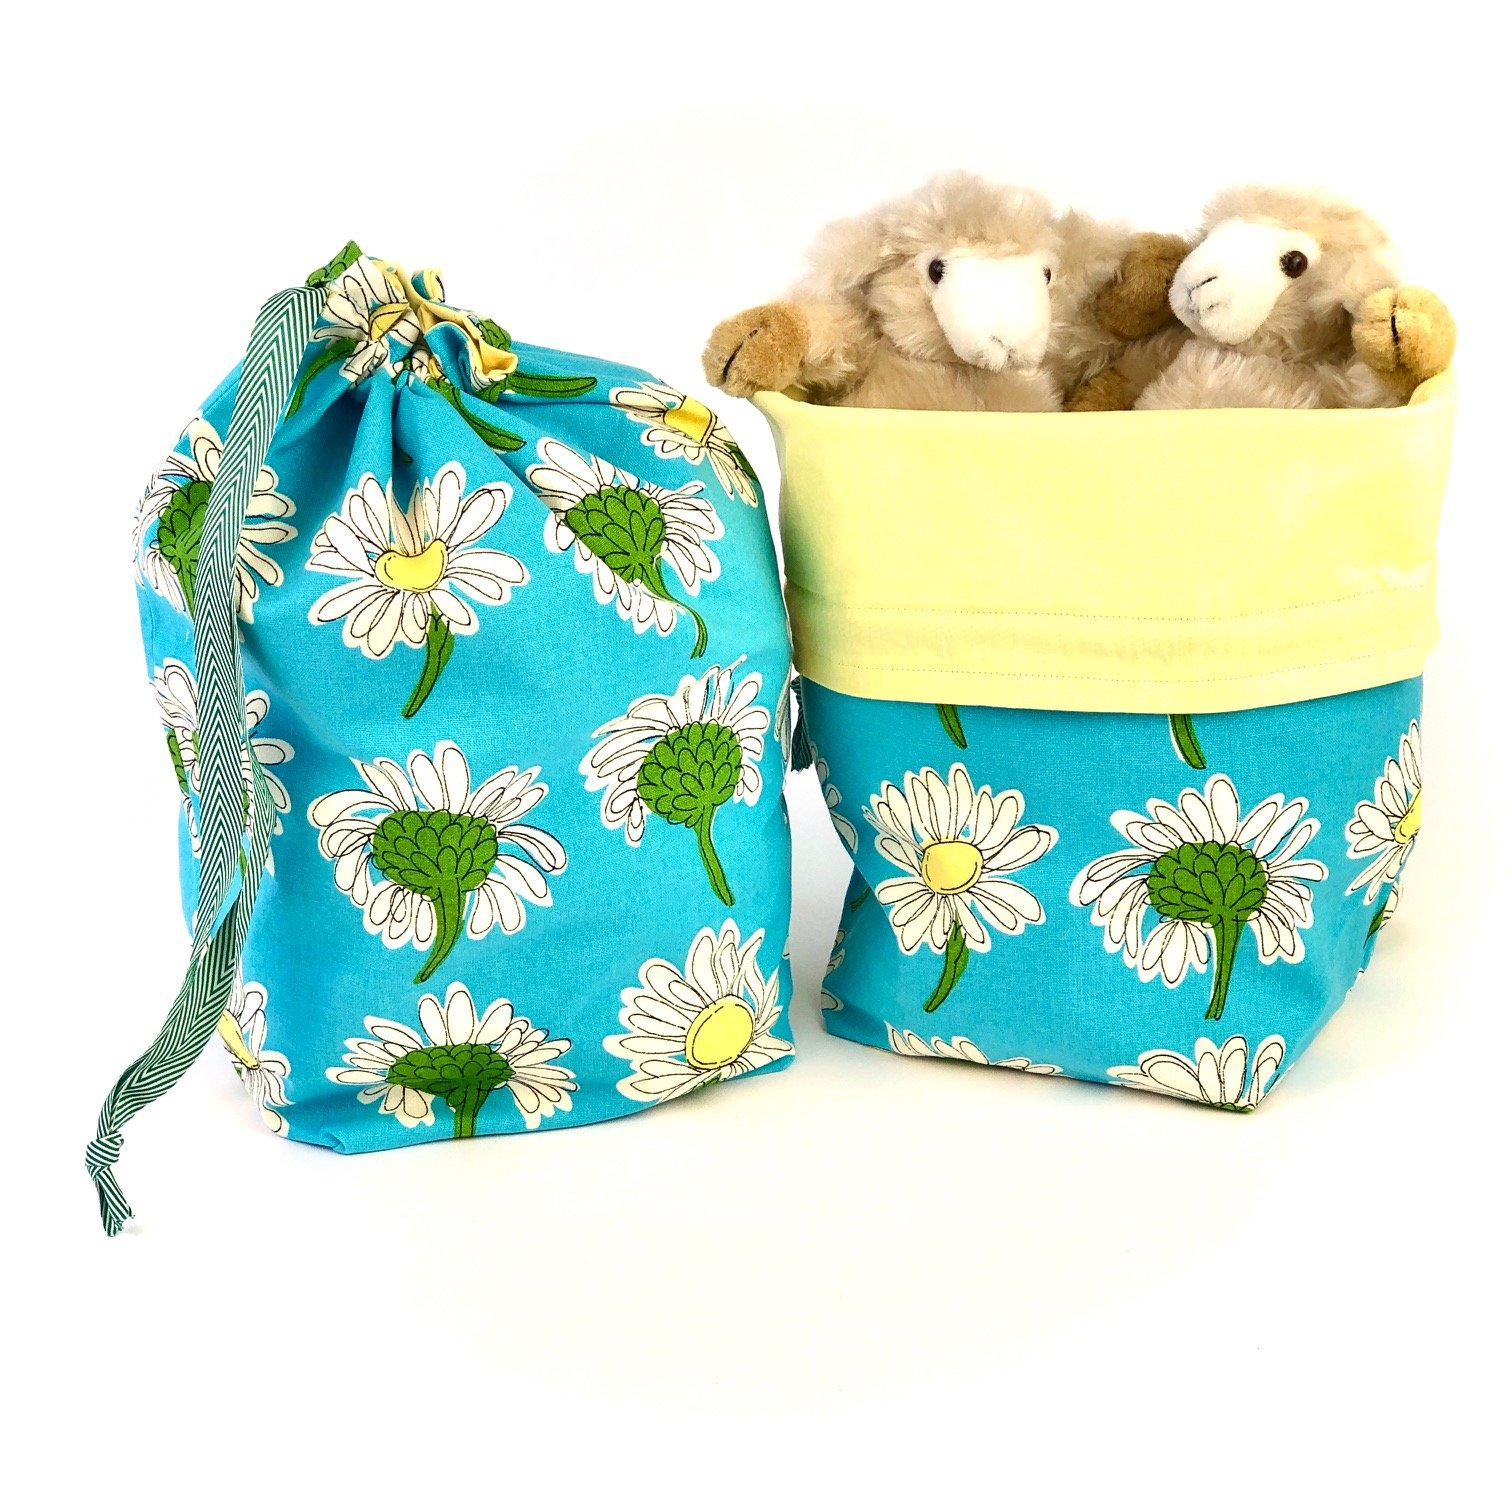 Delightful Daisies - Makers' Exclusive Project Bag